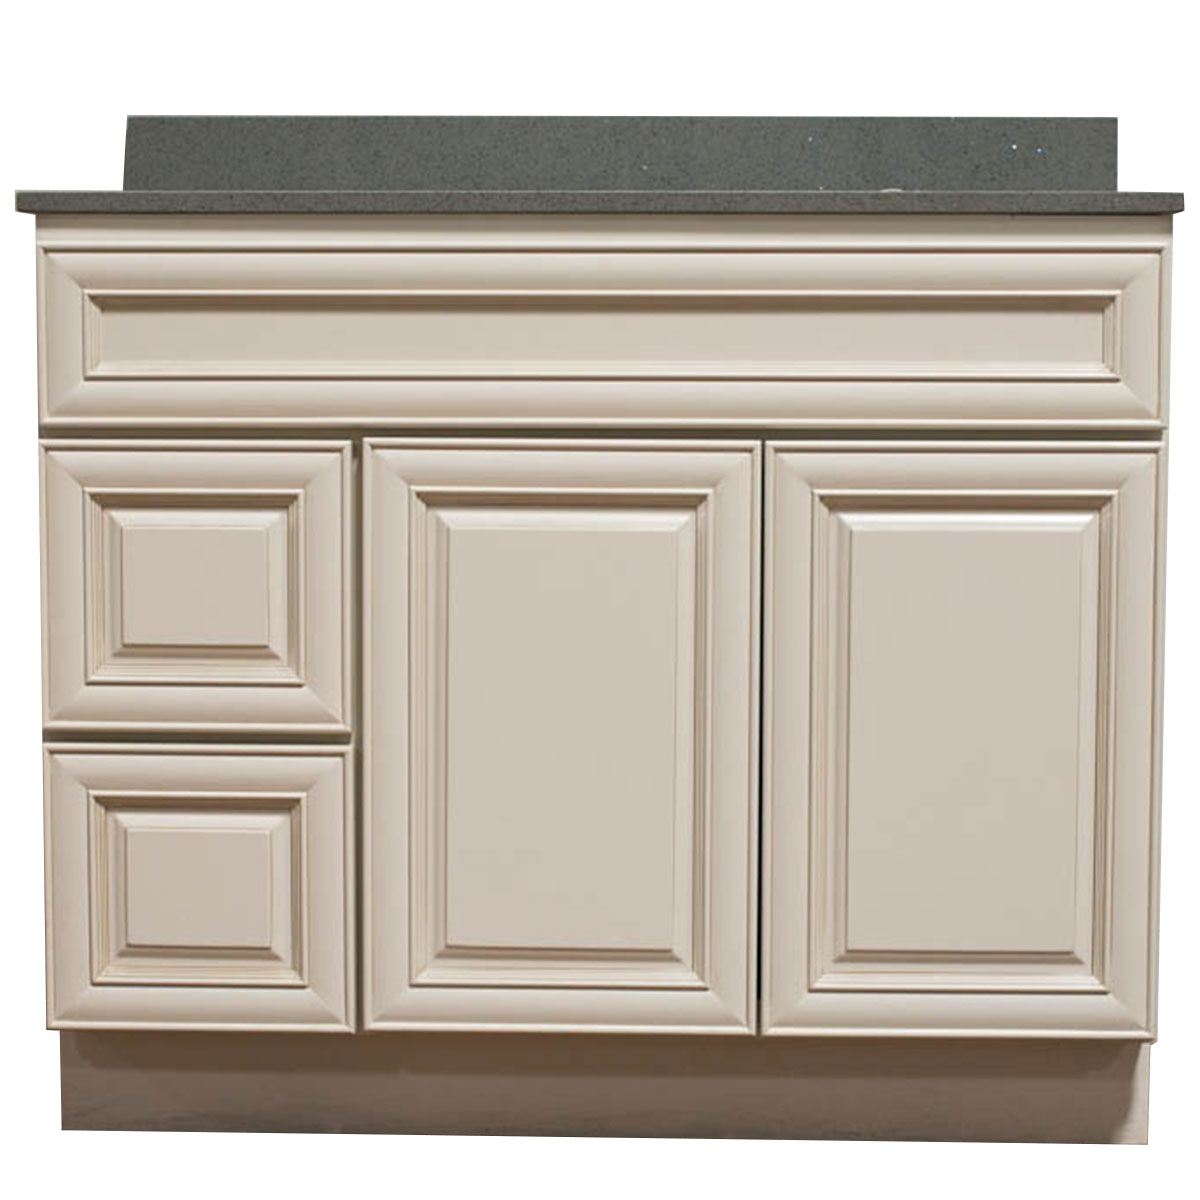 Rta Bathroom Cabinets At Compeive Prices